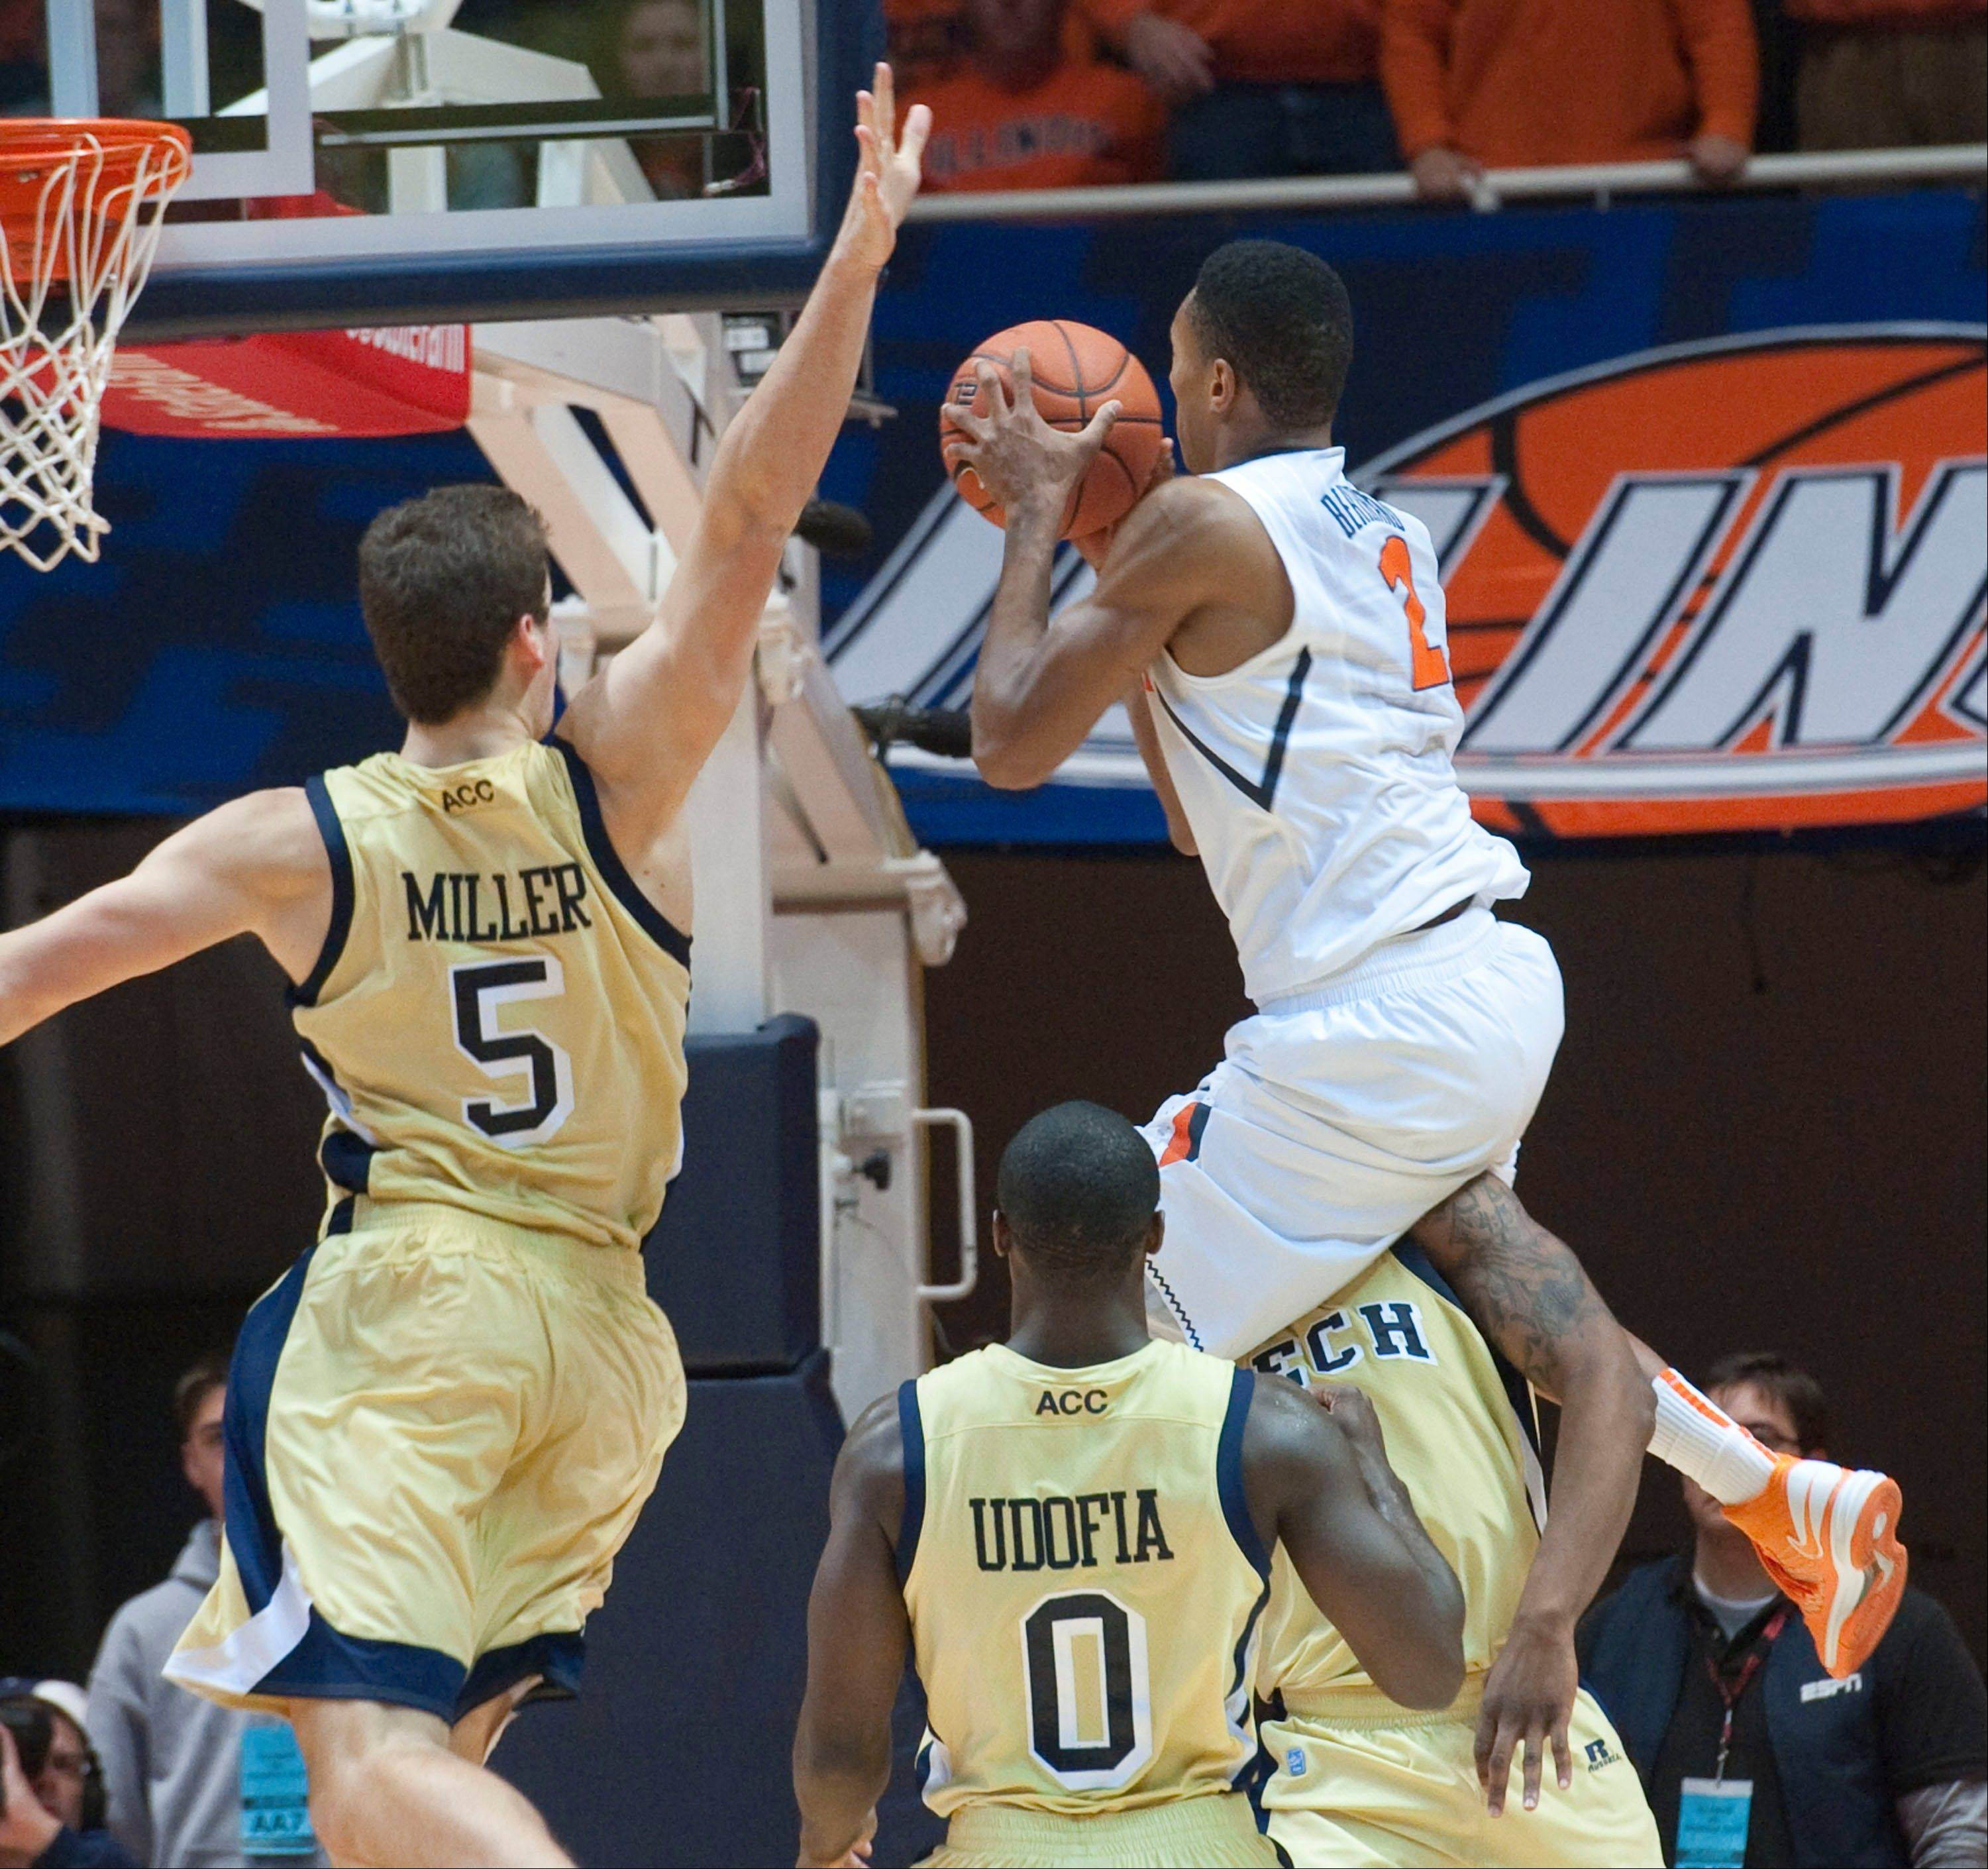 Illinois� Joseph Bertrand (2) collides with Georgia Tech Marcus Georges-Hunt (3) as Georgia Tech Daniel Miller (5) tries to block the shot Wednesday during the second half in Champaign.